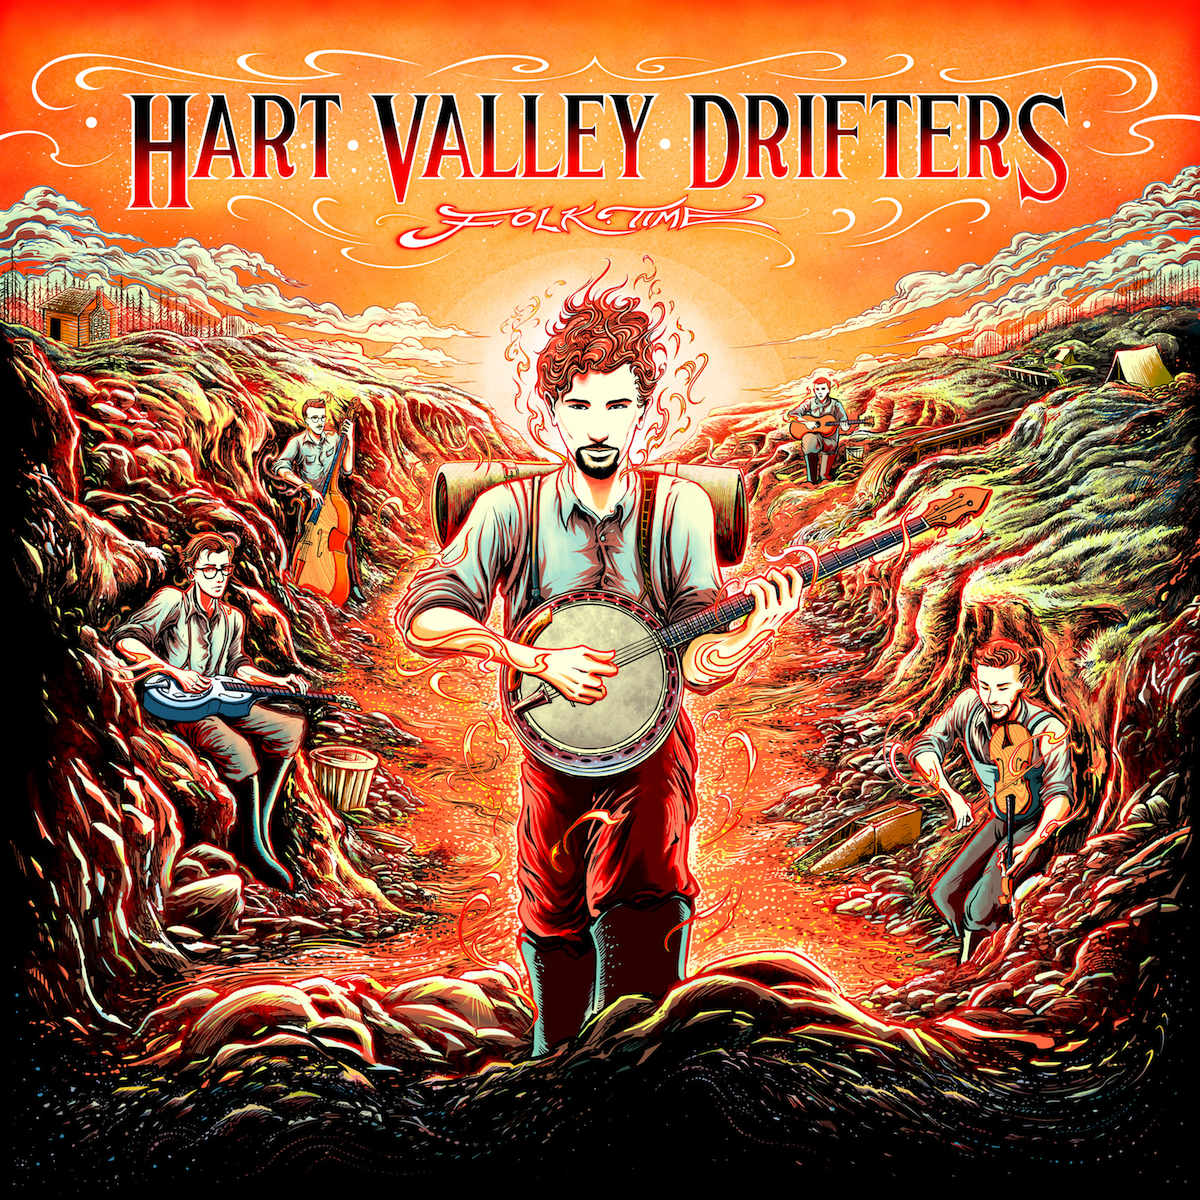 Hart Valley Drifters Cover